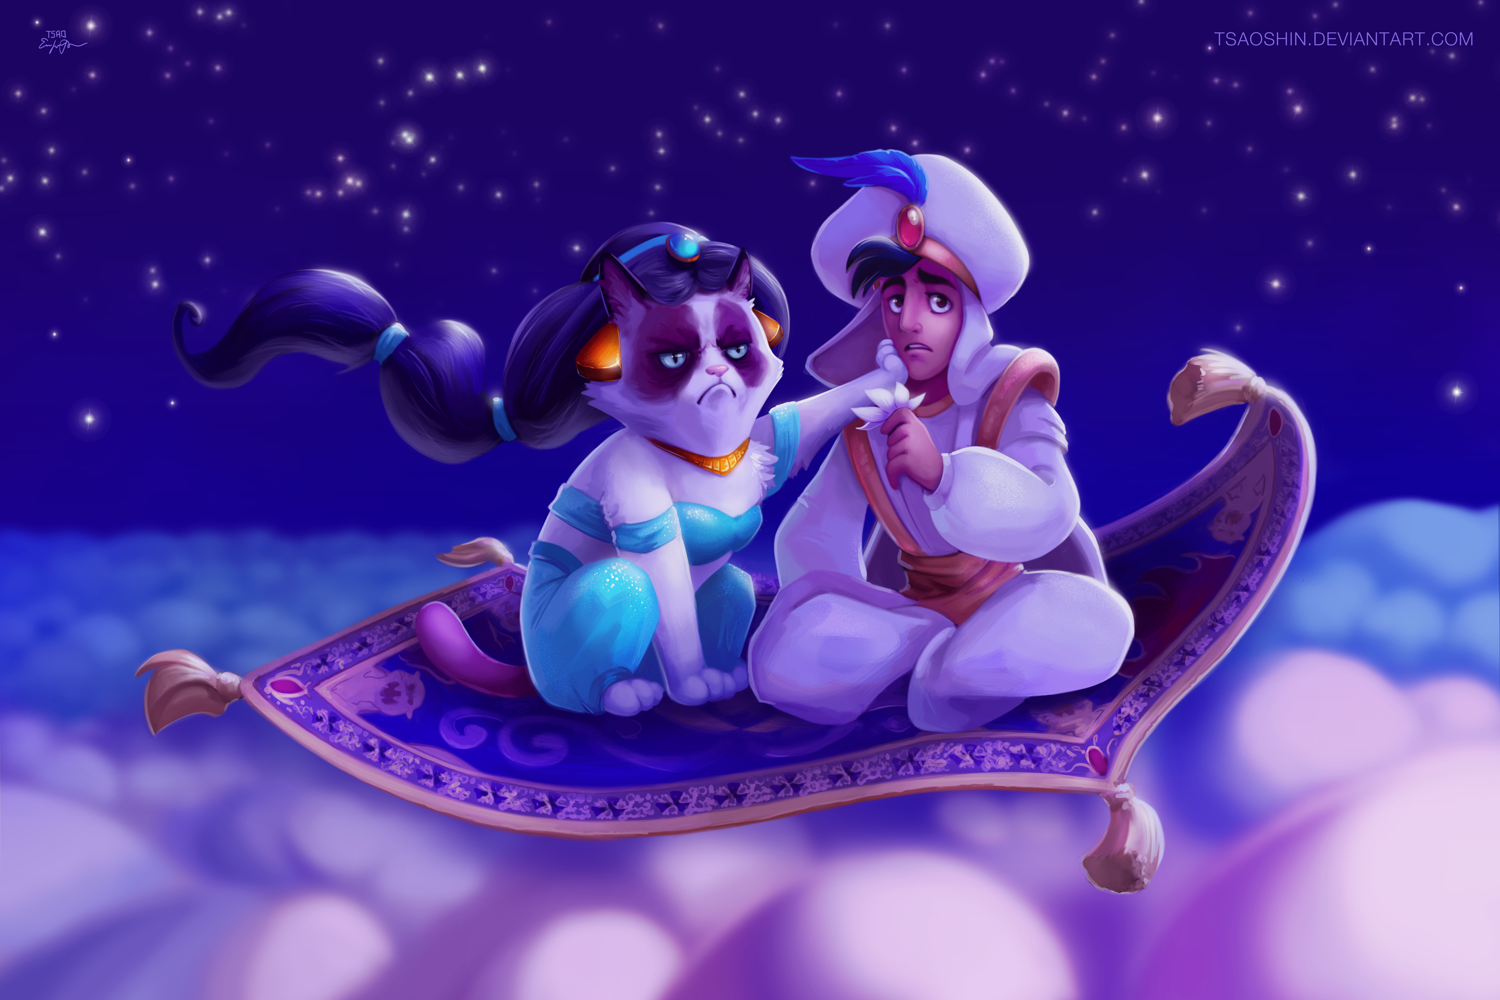 TSA0 TSAOSHINDEVIANTART COM Princess Jasmine Vertebrate Cartoon Purple Violet Sky Computer Wallpaper